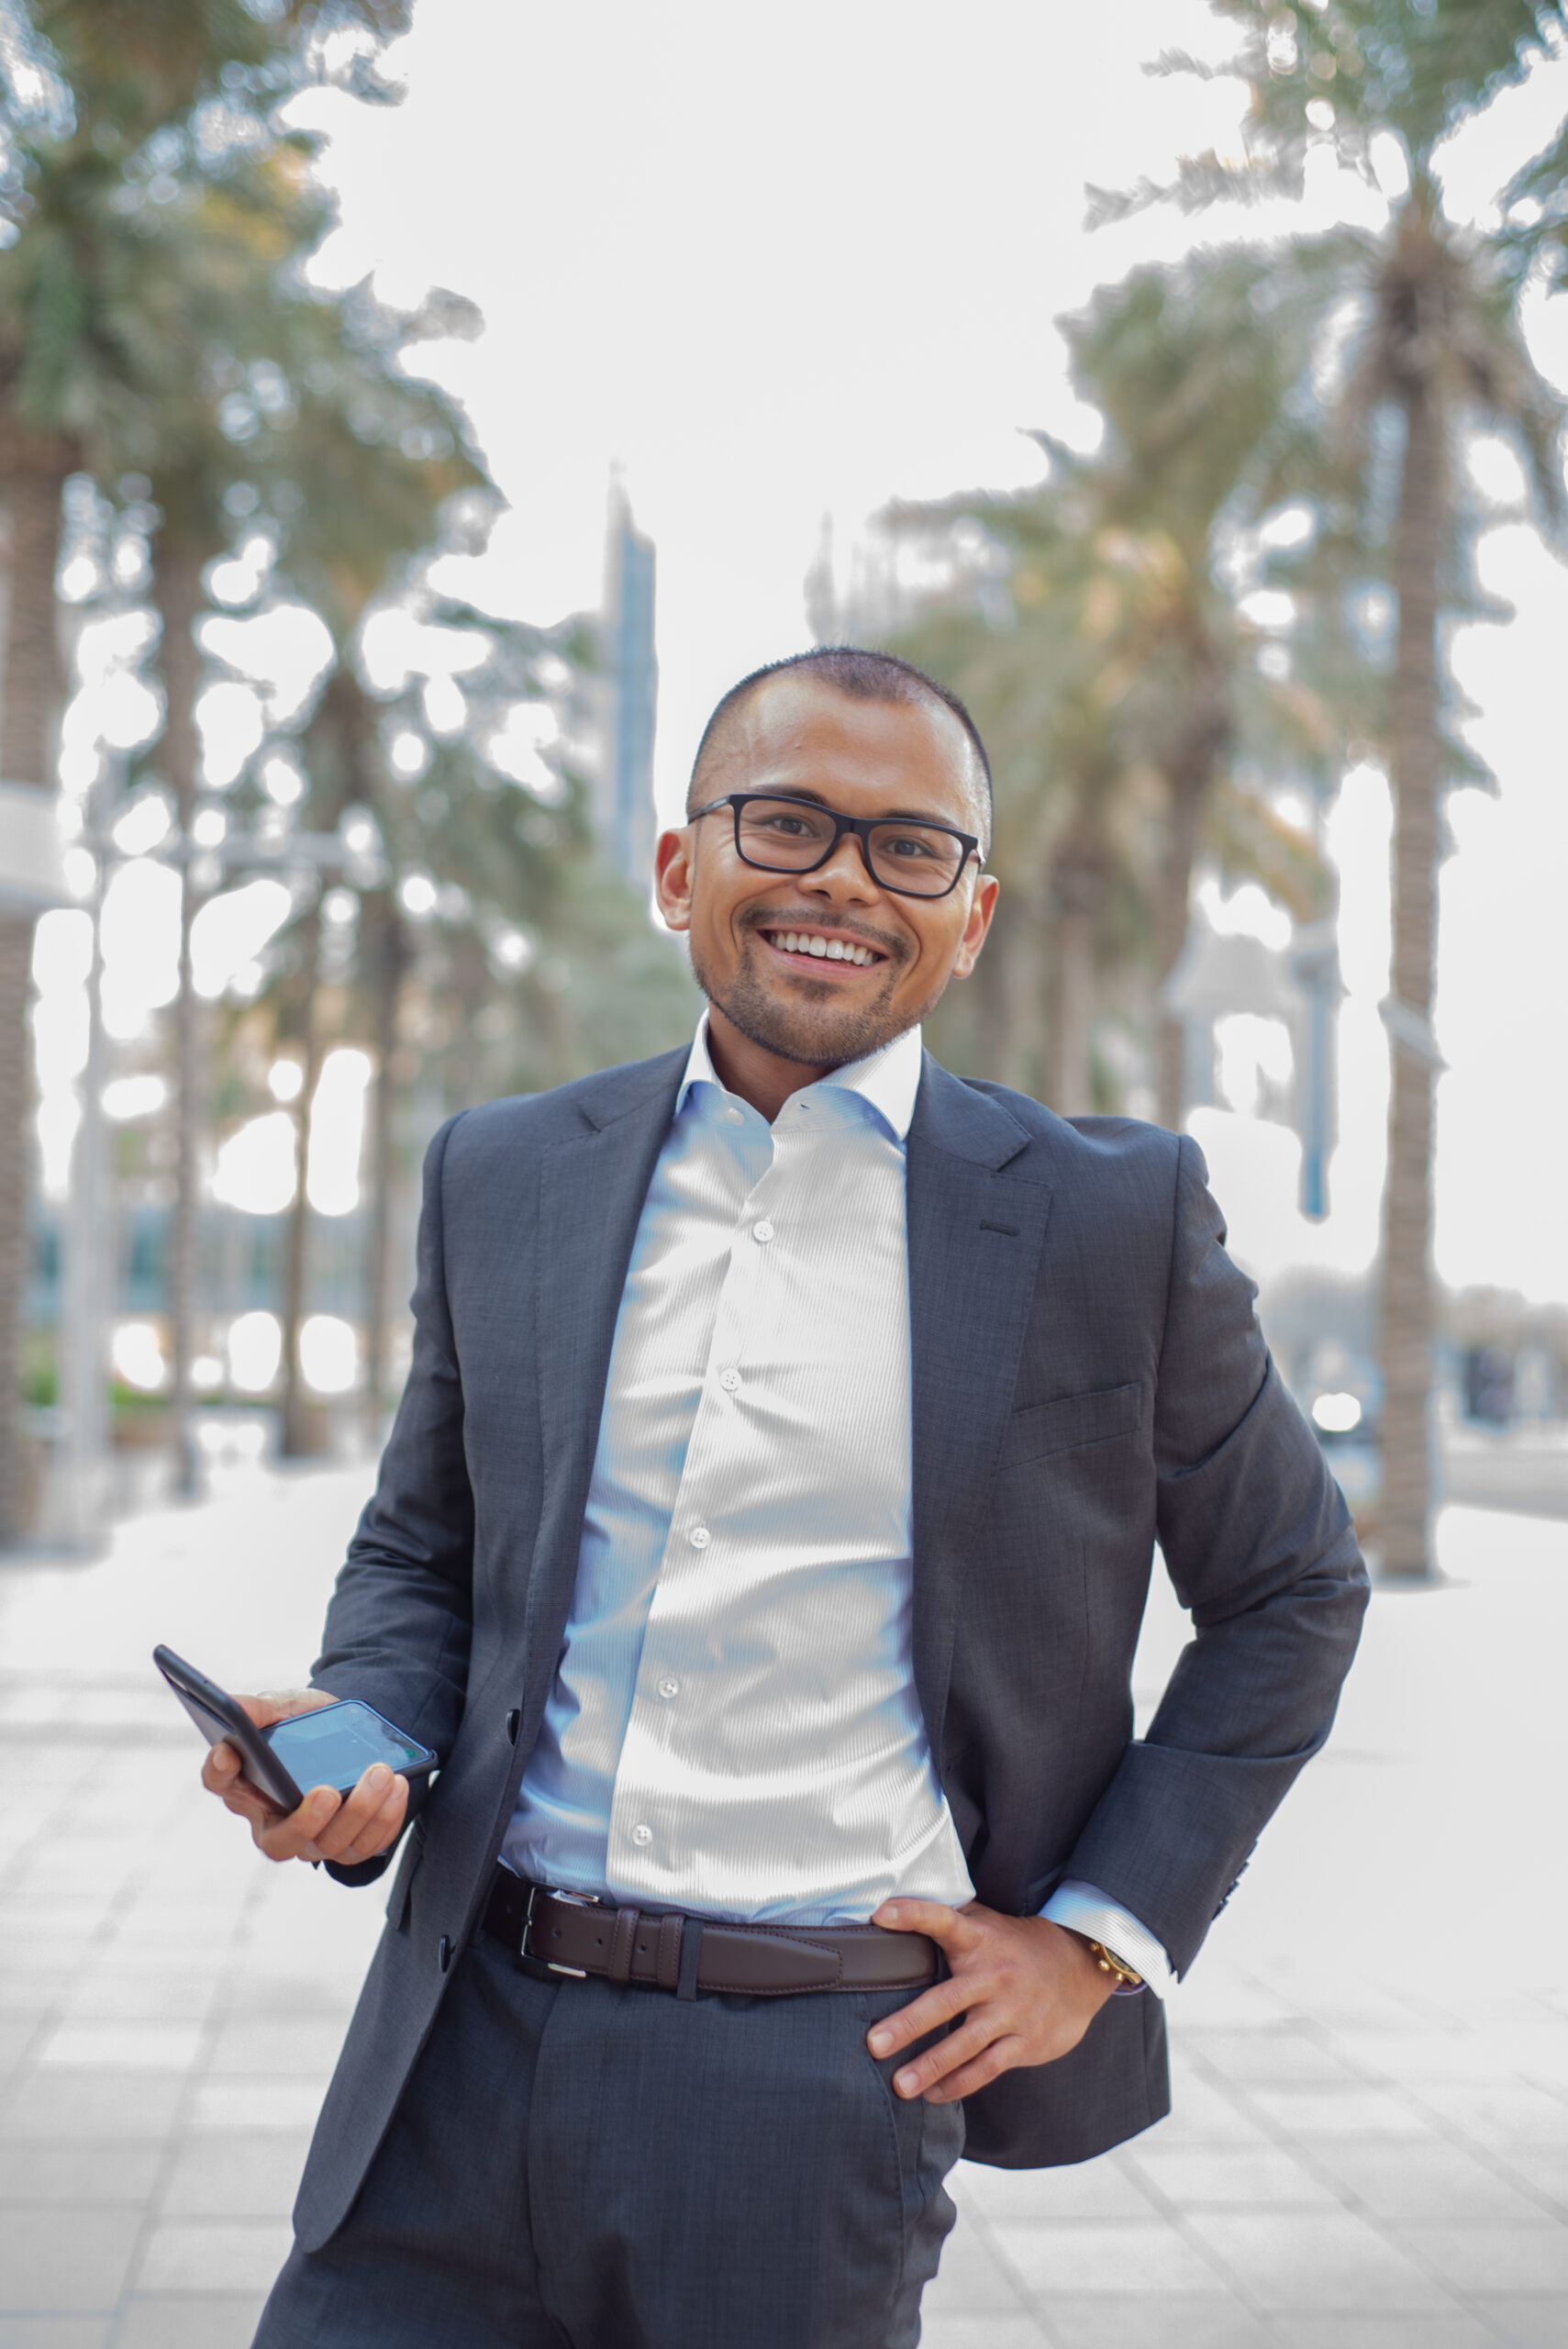 Richie Santosdiaz is an economic development expert in the context of management consulting strategy and implementation